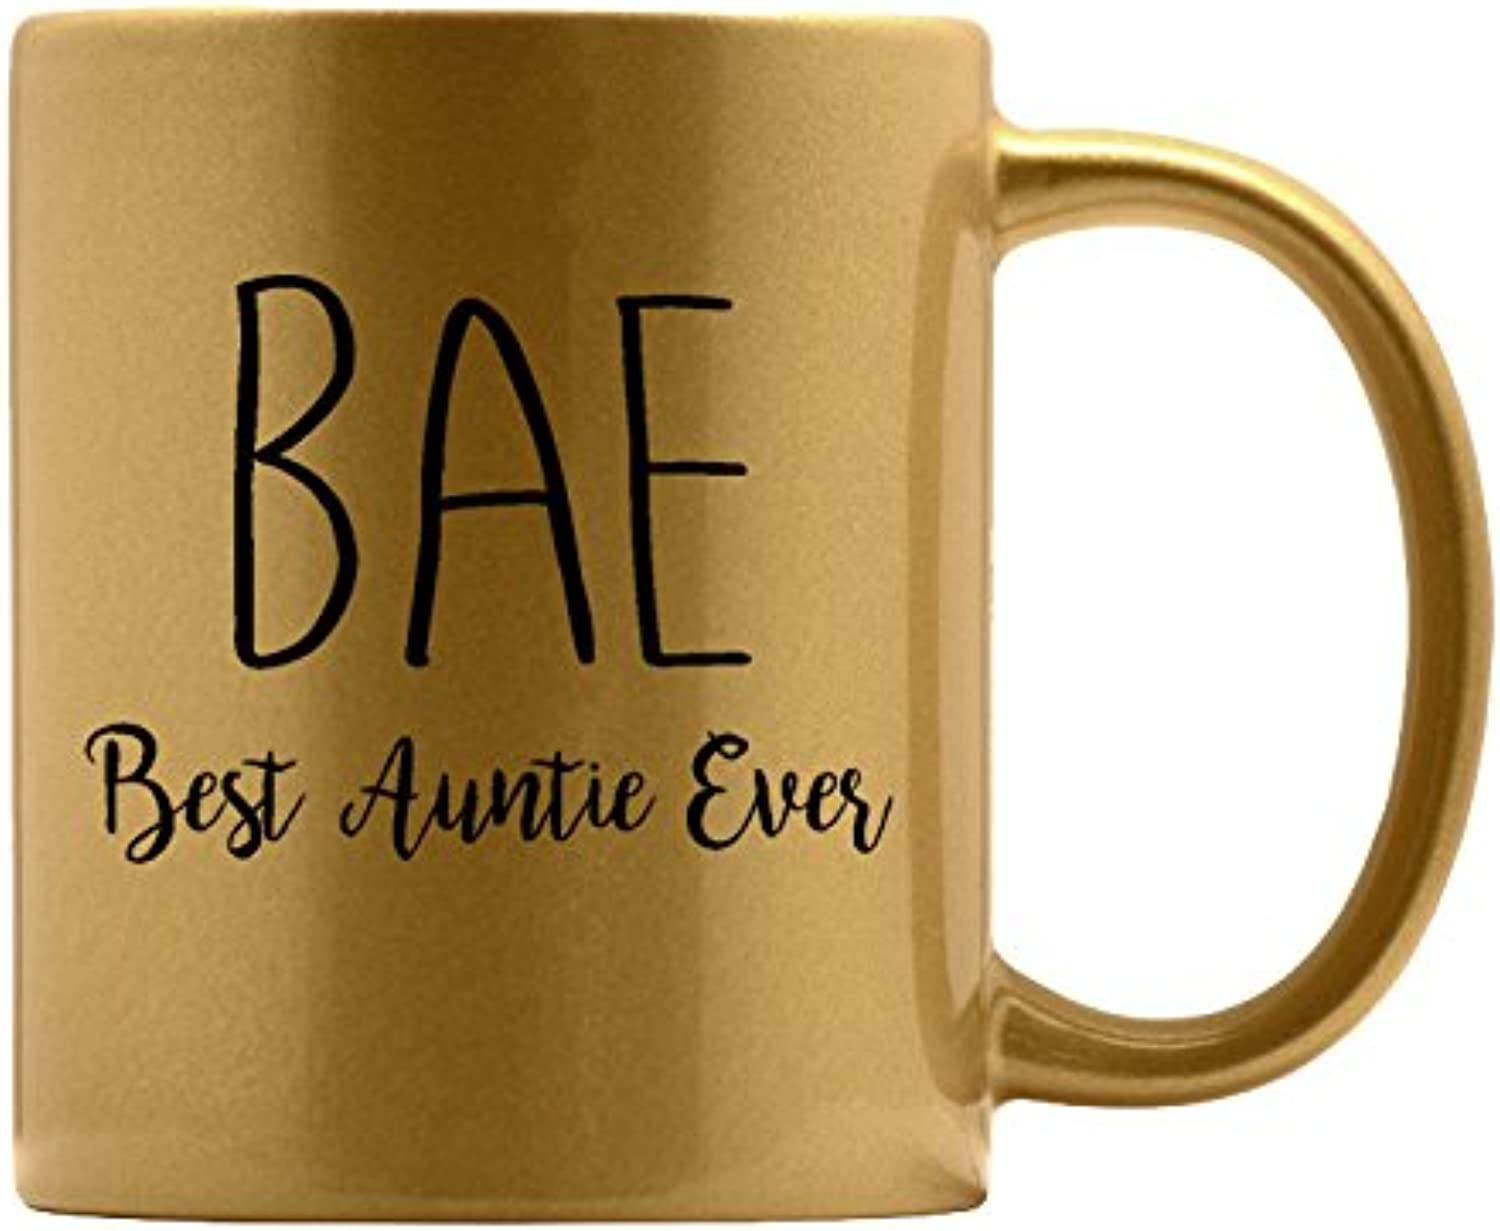 P&B BAE Best Aunt Ever Ceramic Coffee Mugs M405 (11oz. gold Mug)